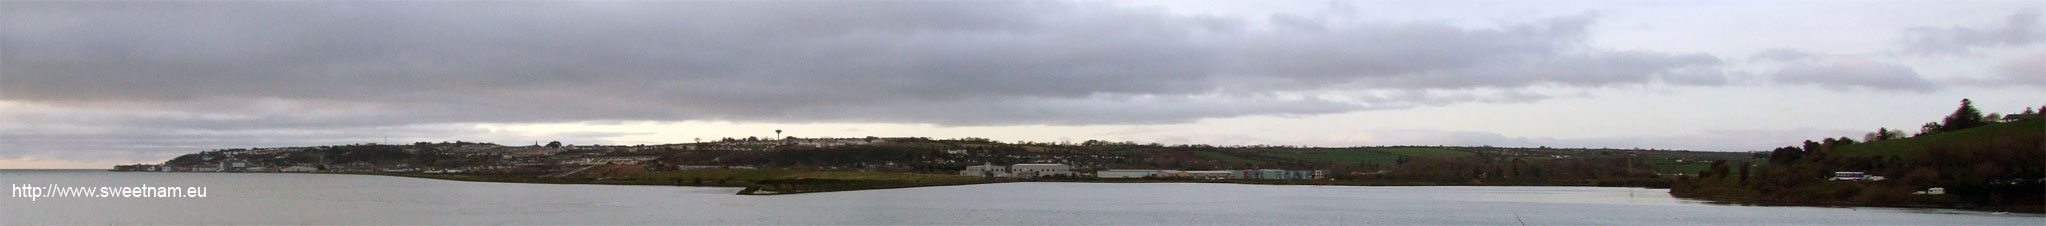 Panoramic photo of Youghal taken from the Waterford side of the Blackwater bridge.